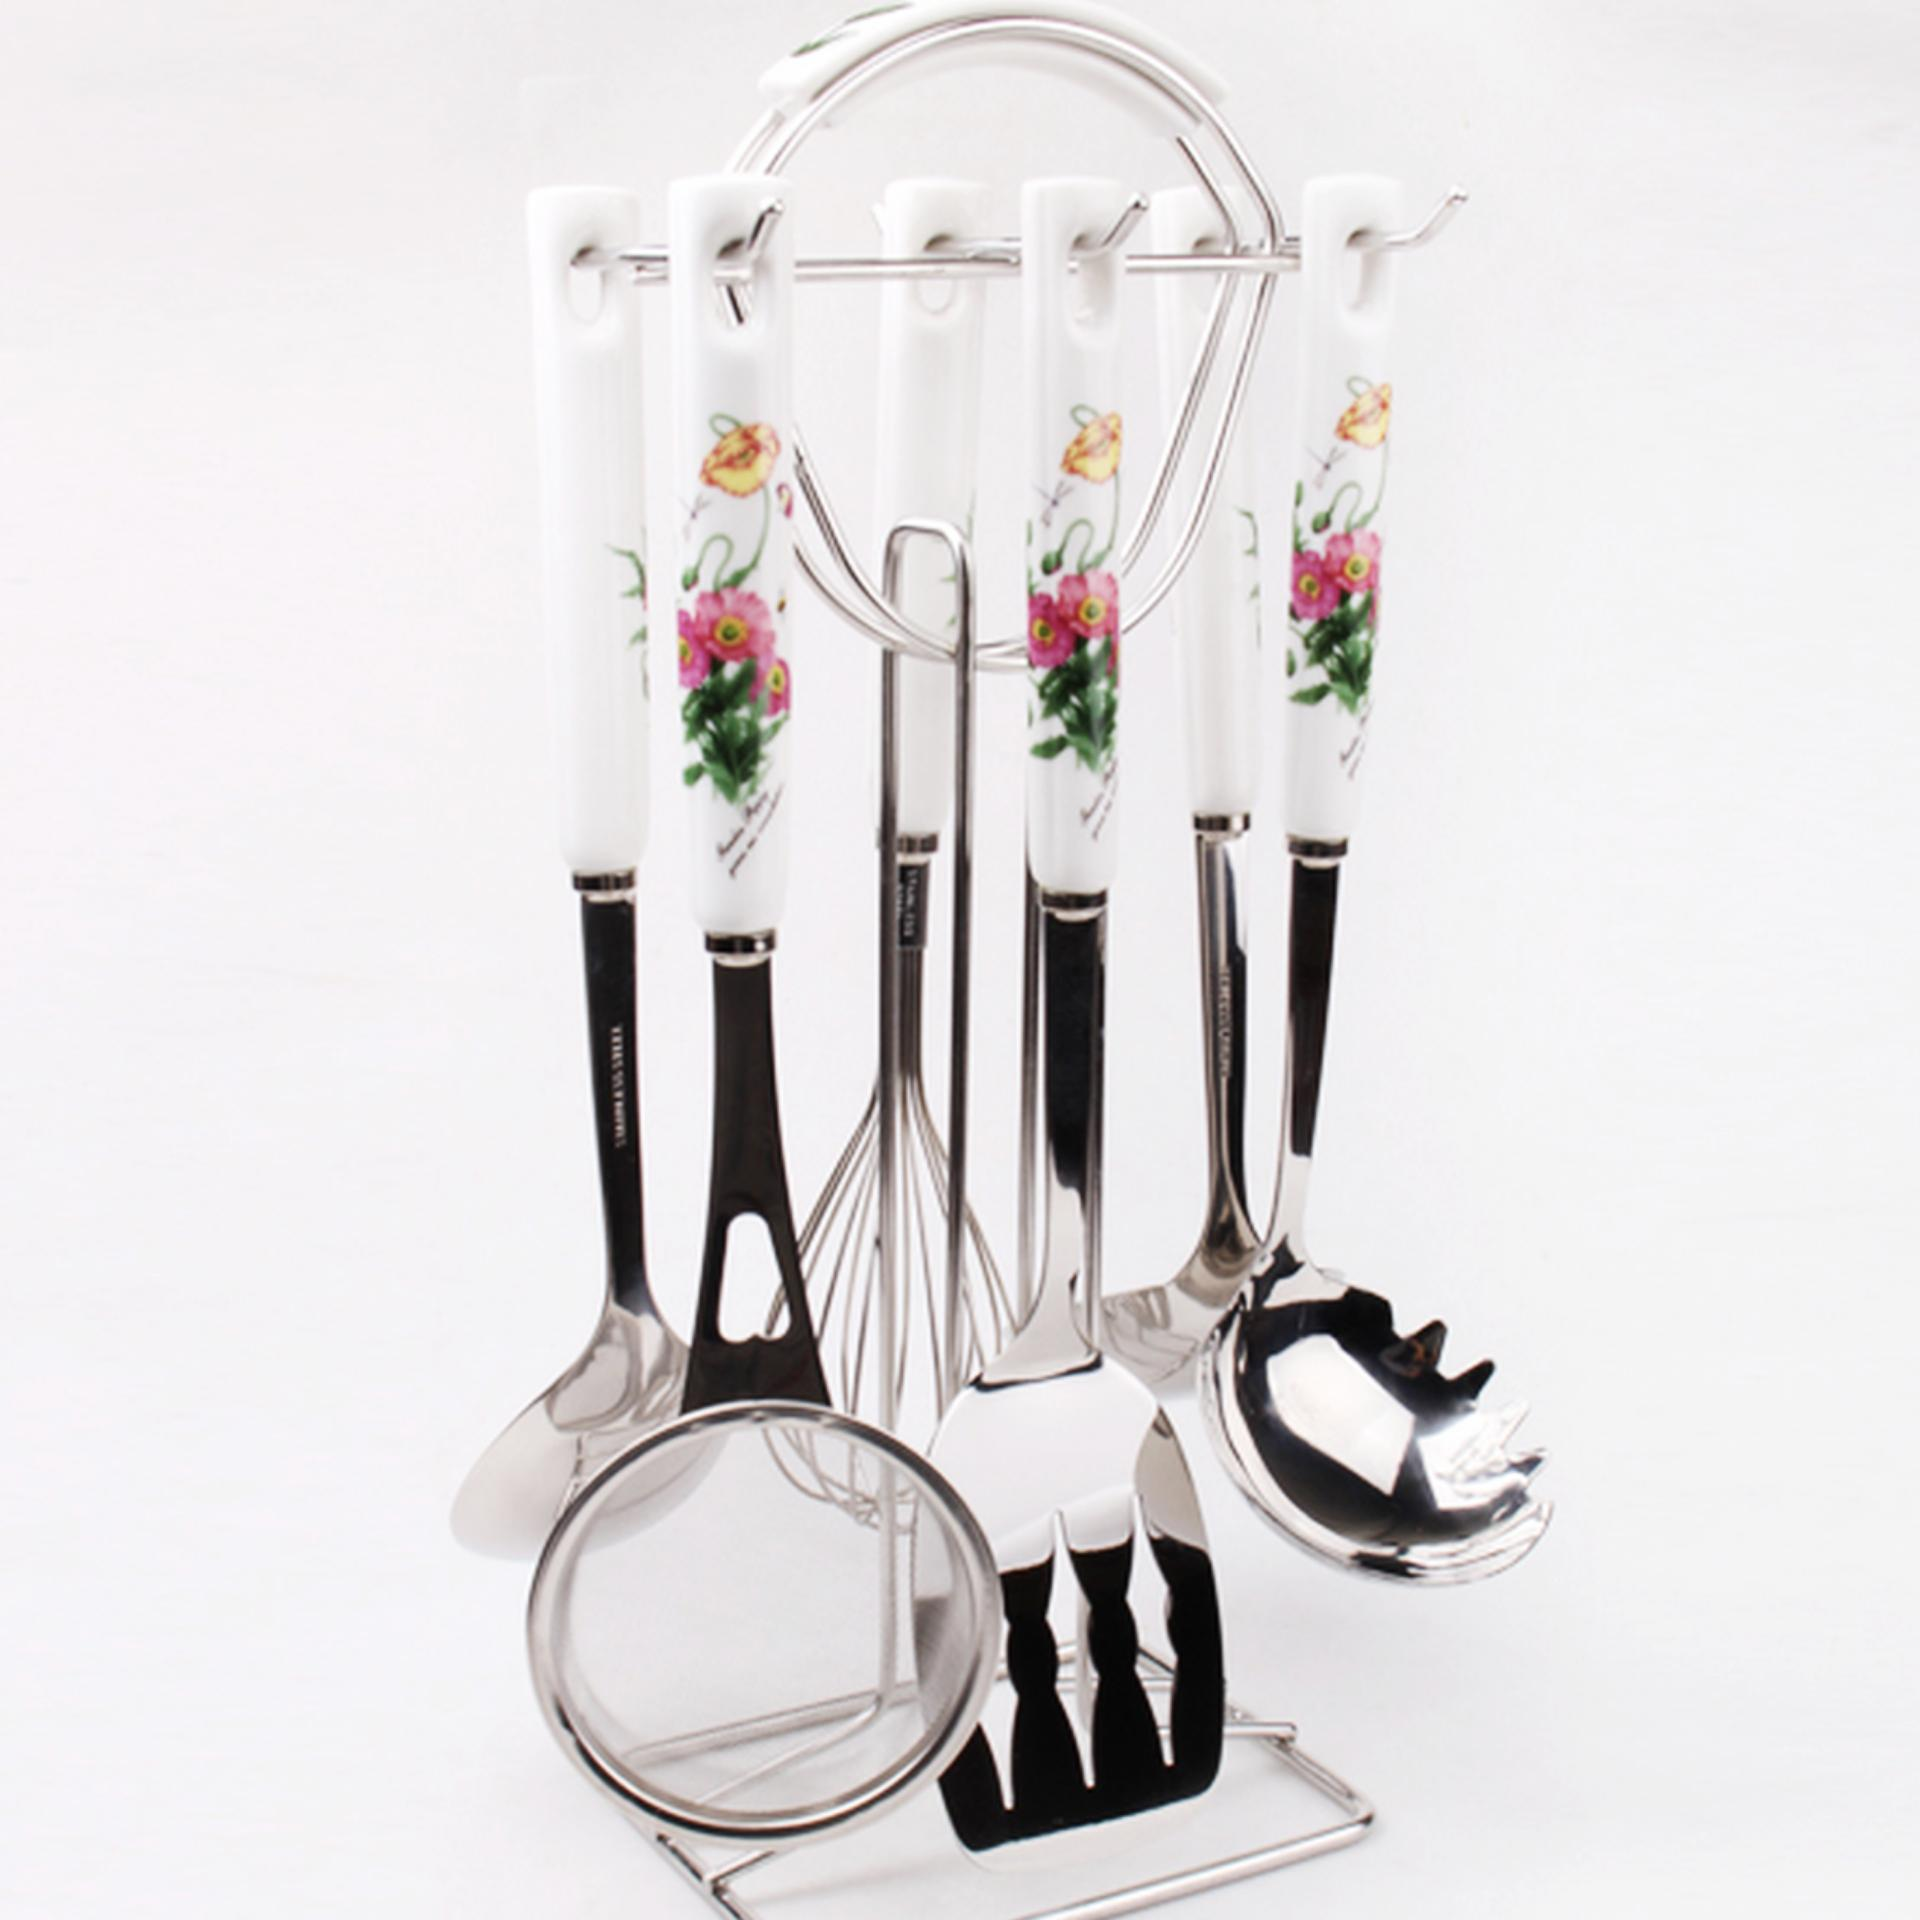 Price Frontiera Flower Garen 7 Piece Kitchen Tool Set Frontiera Singapore